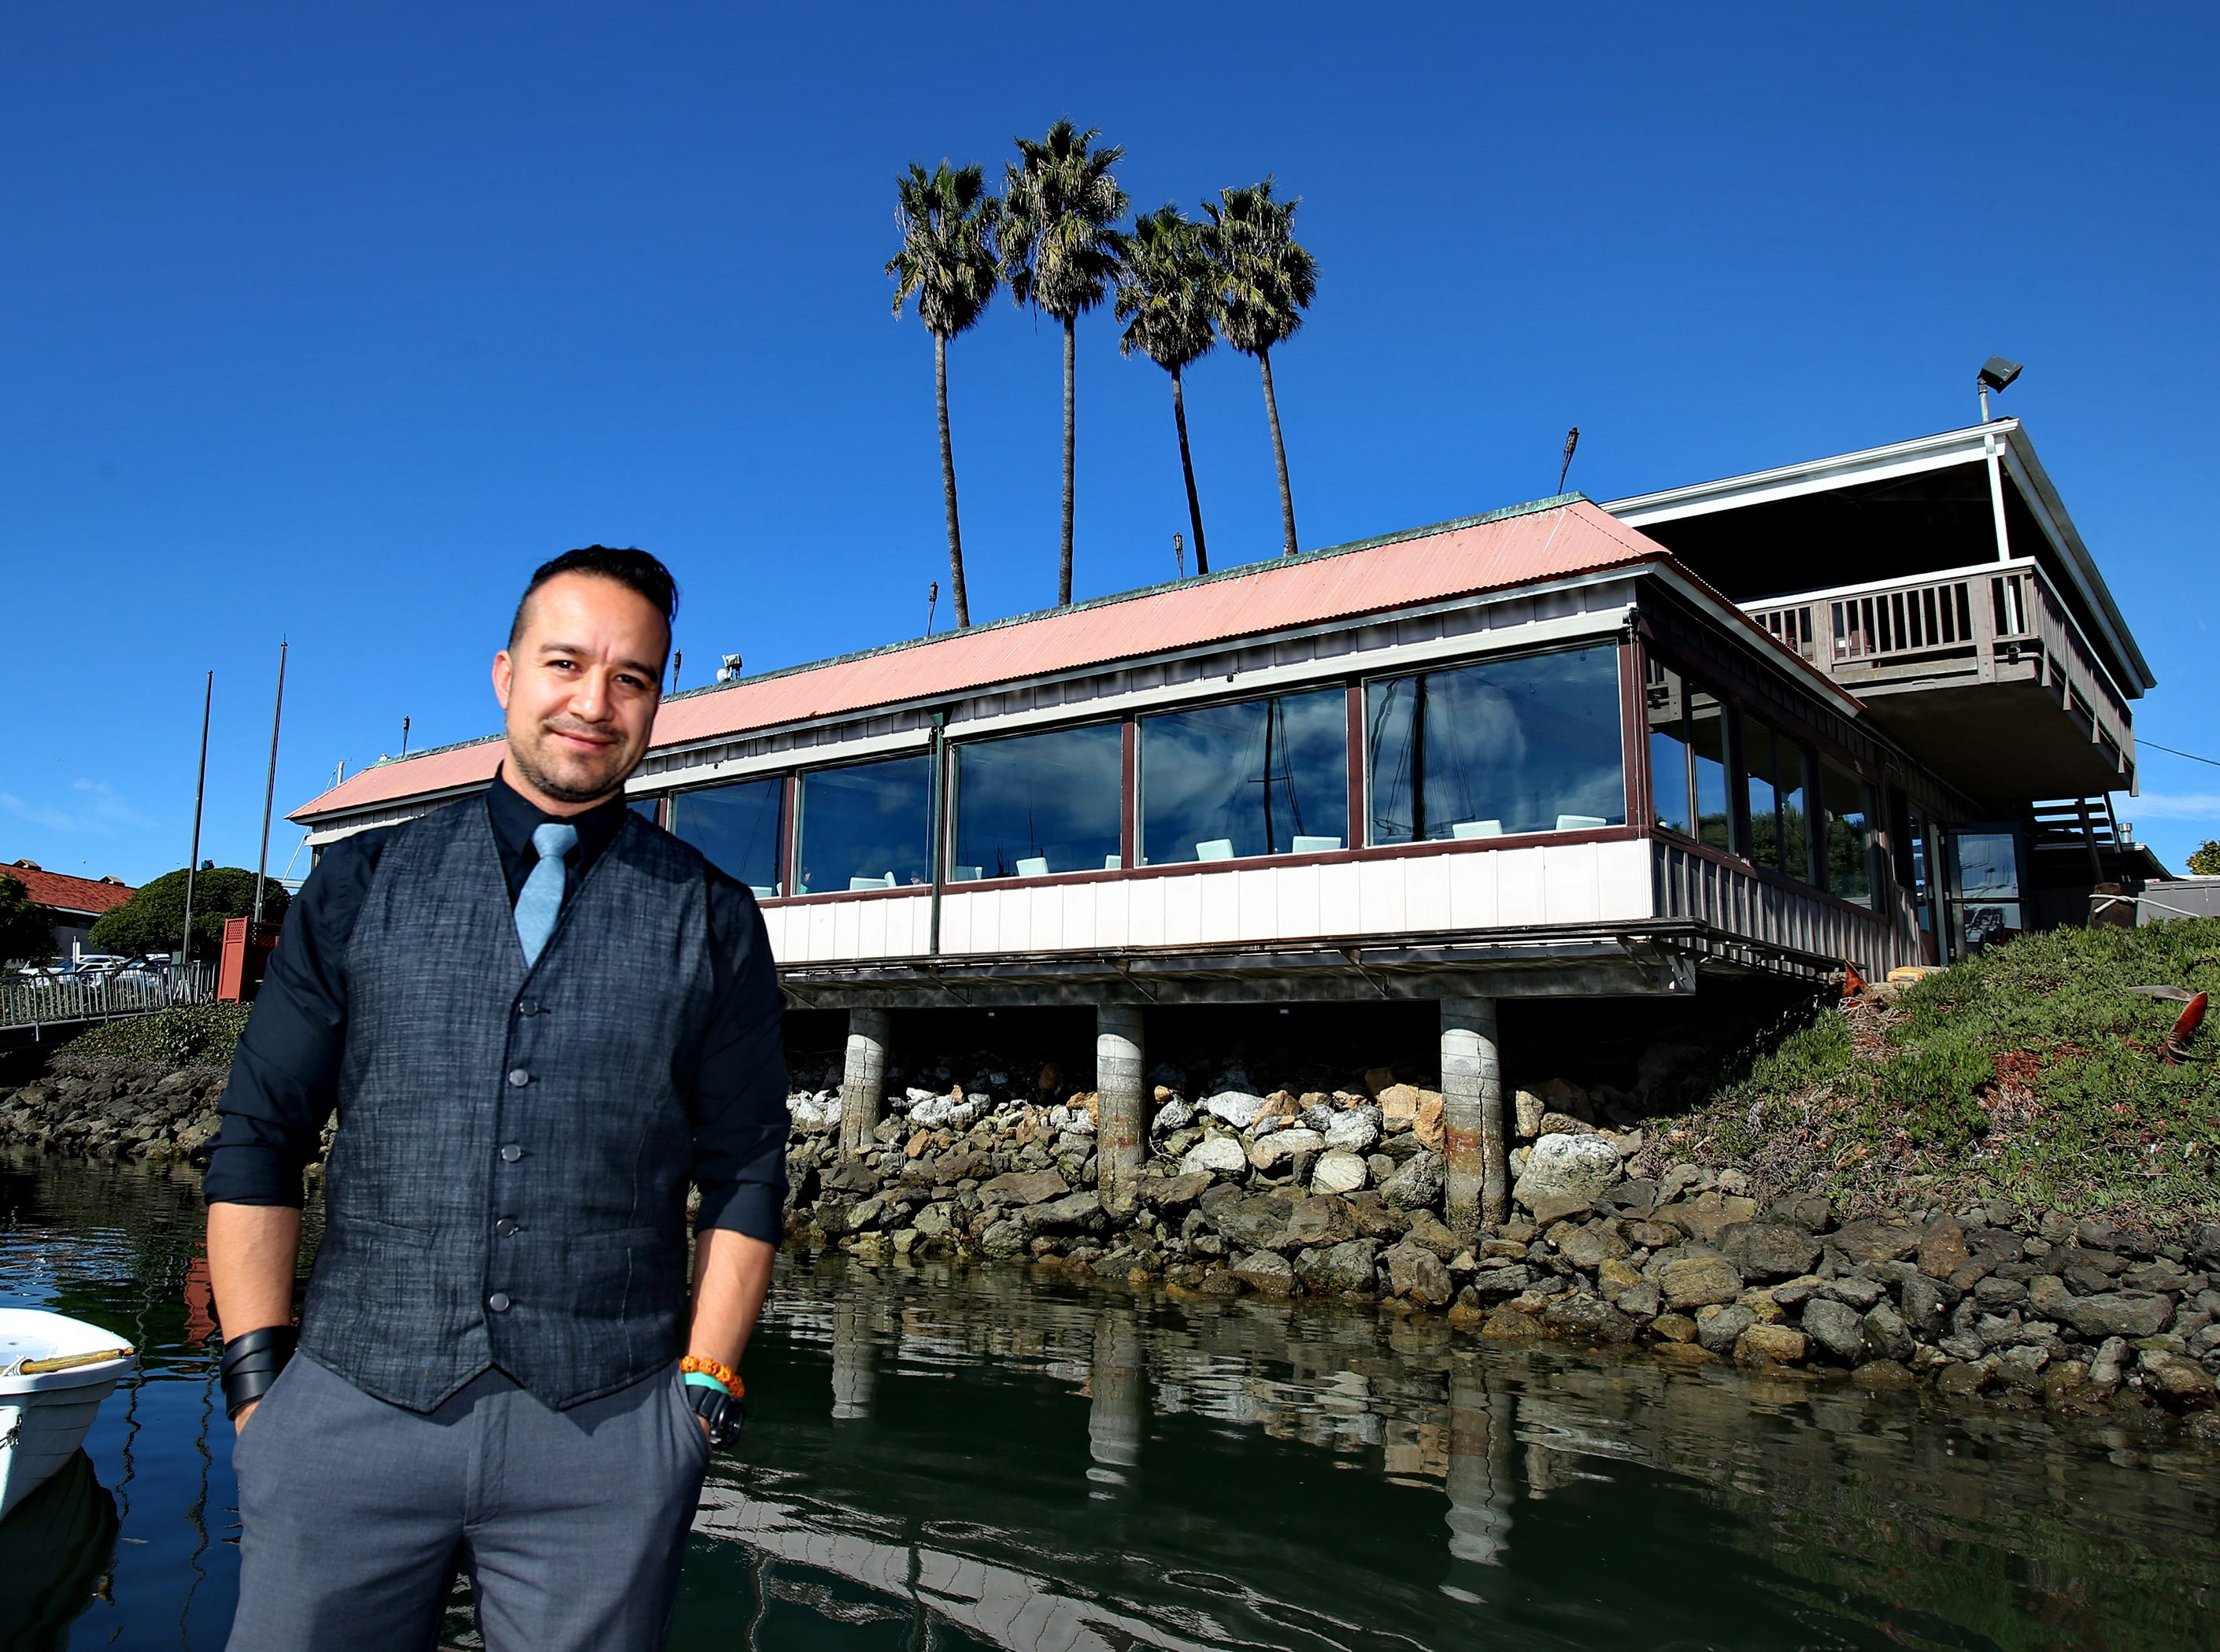 Water's Edge Restaurant and Bar's marketing director Misa Silva stands in front of the restaurant's main dining area that overlooks the Ventura Harbor. The new restaurant is at 1510 Anchors Way Drive in Ventura.